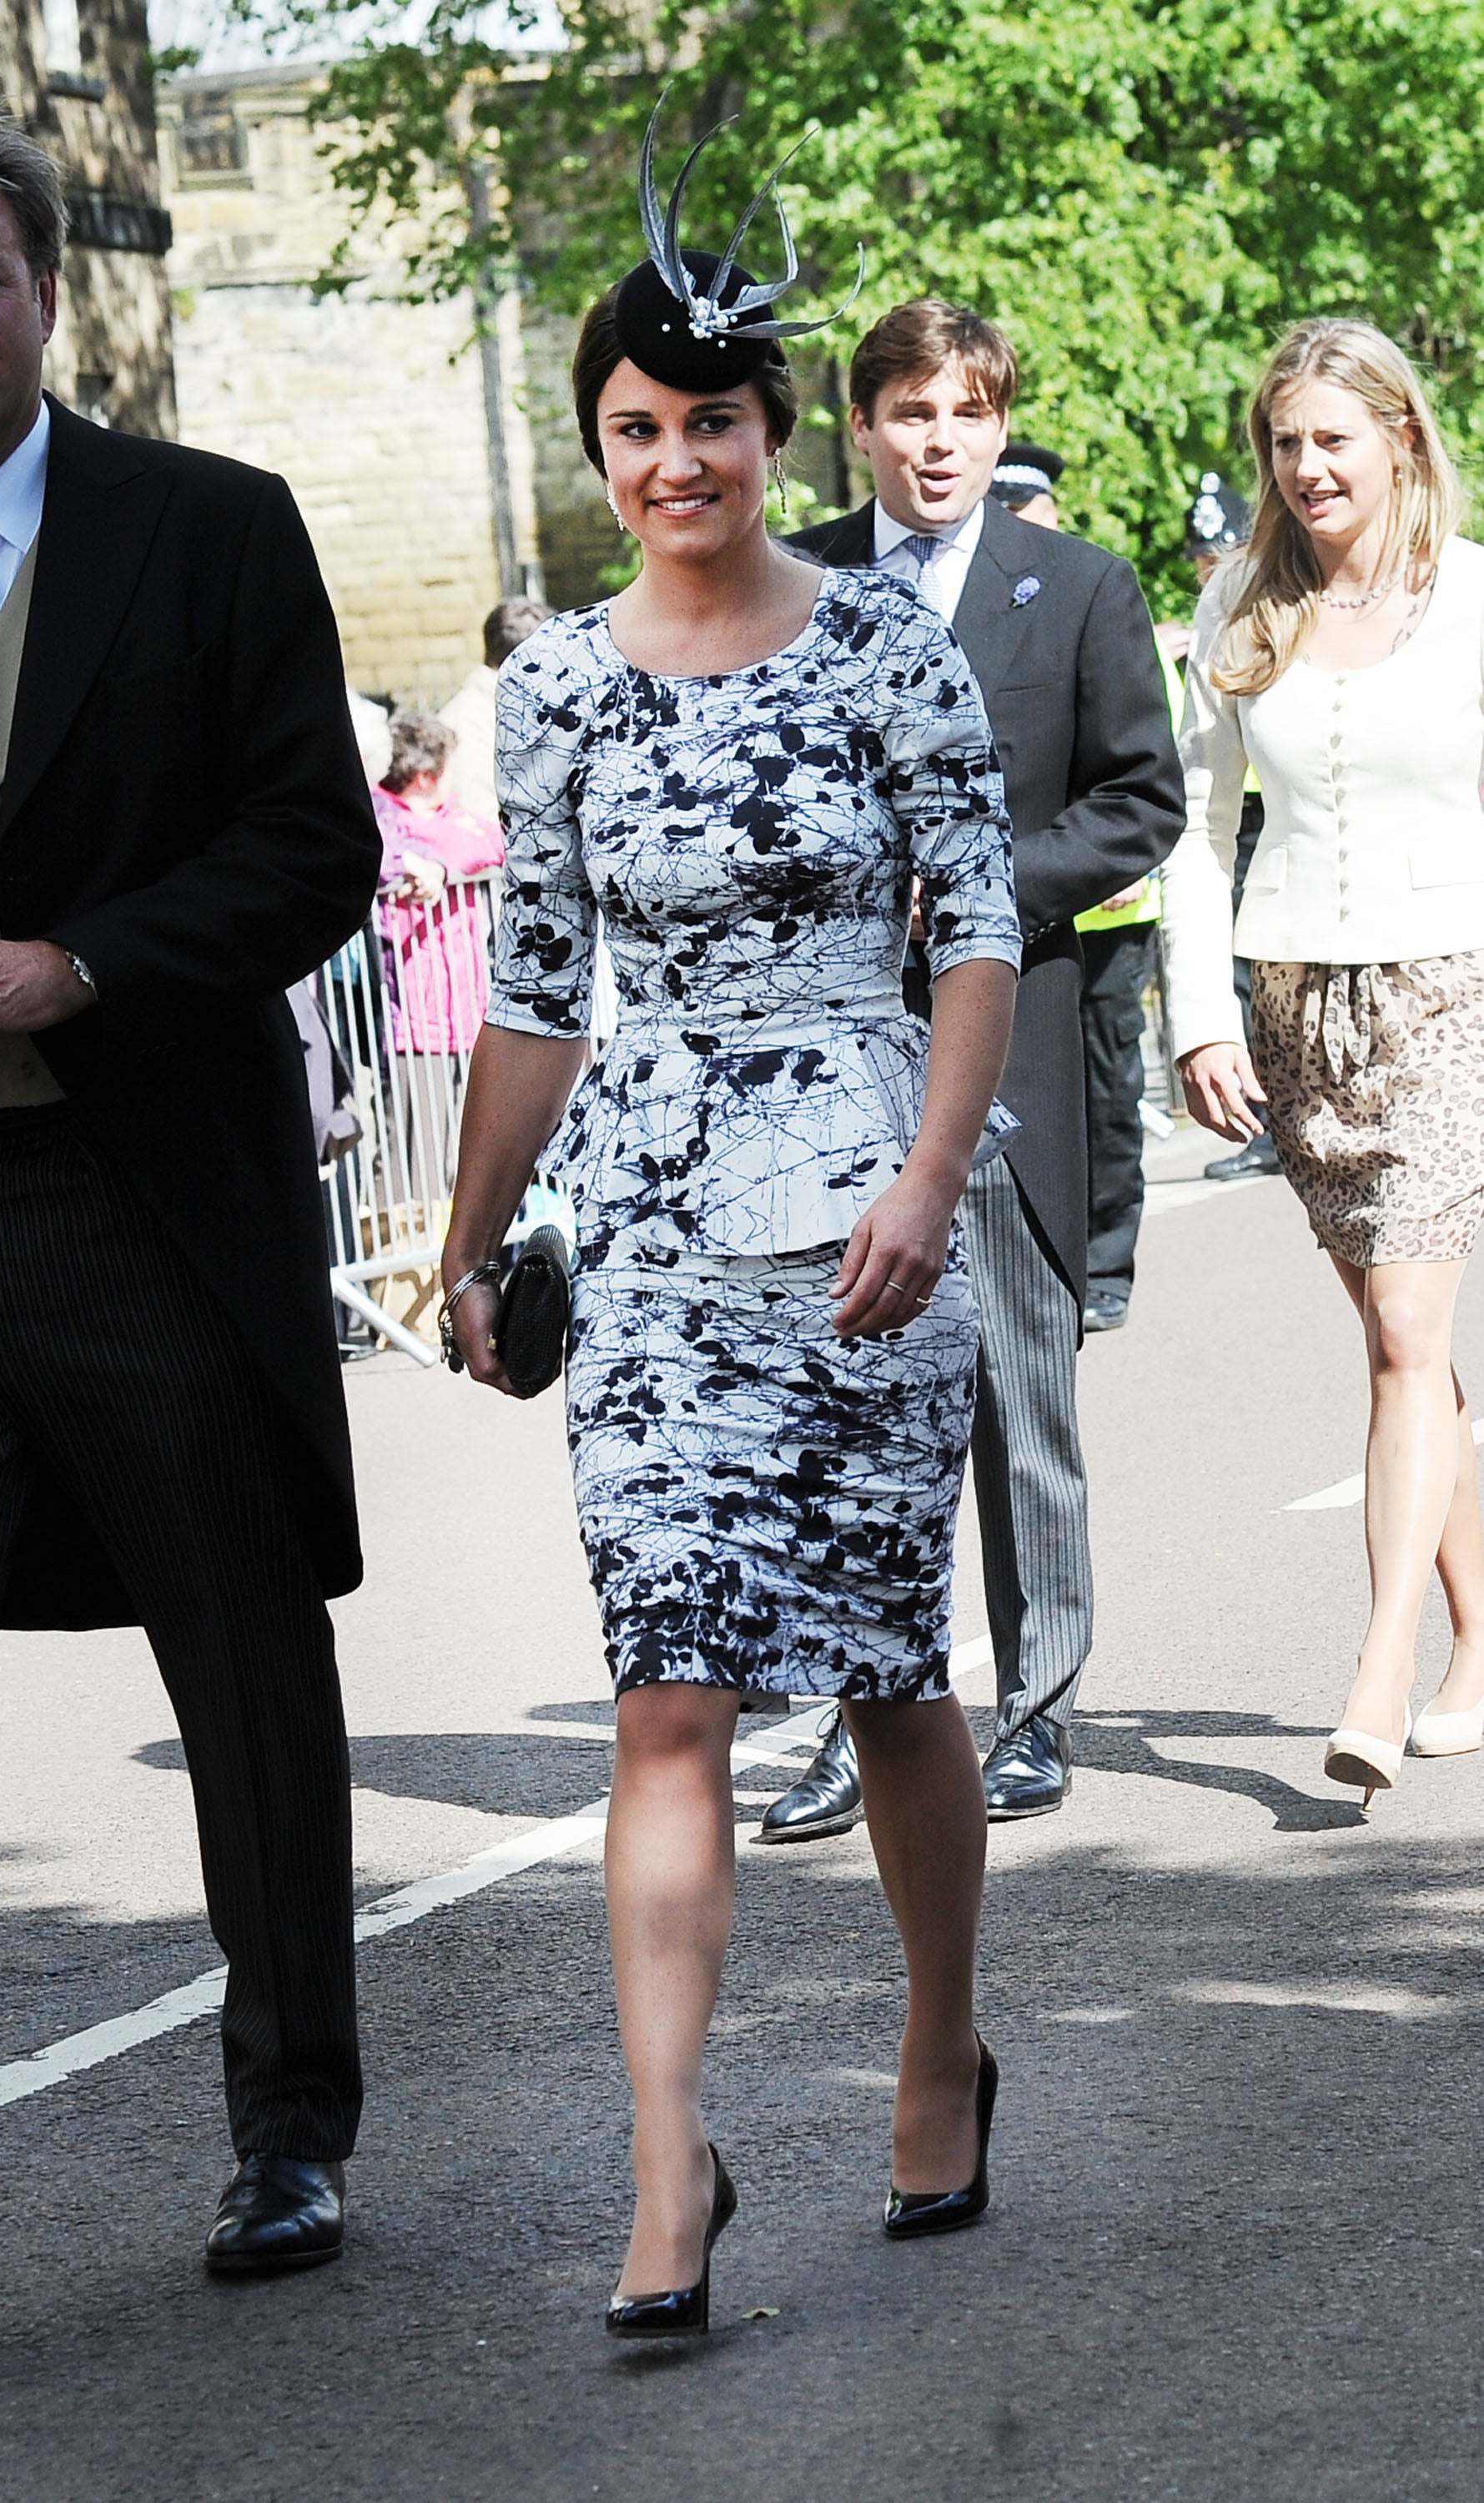 Pippa Middleton showed off her famous curves in a Tabitha Webb peplum dress then added a fancy fascinator at Melissa Percy and Thomas Van Straubenzee's wedding in the UK in June. We love her black-and-white palette and think it's totally appropriate for a black-tie wedding. The fascinator is optional but would give you that British touch.